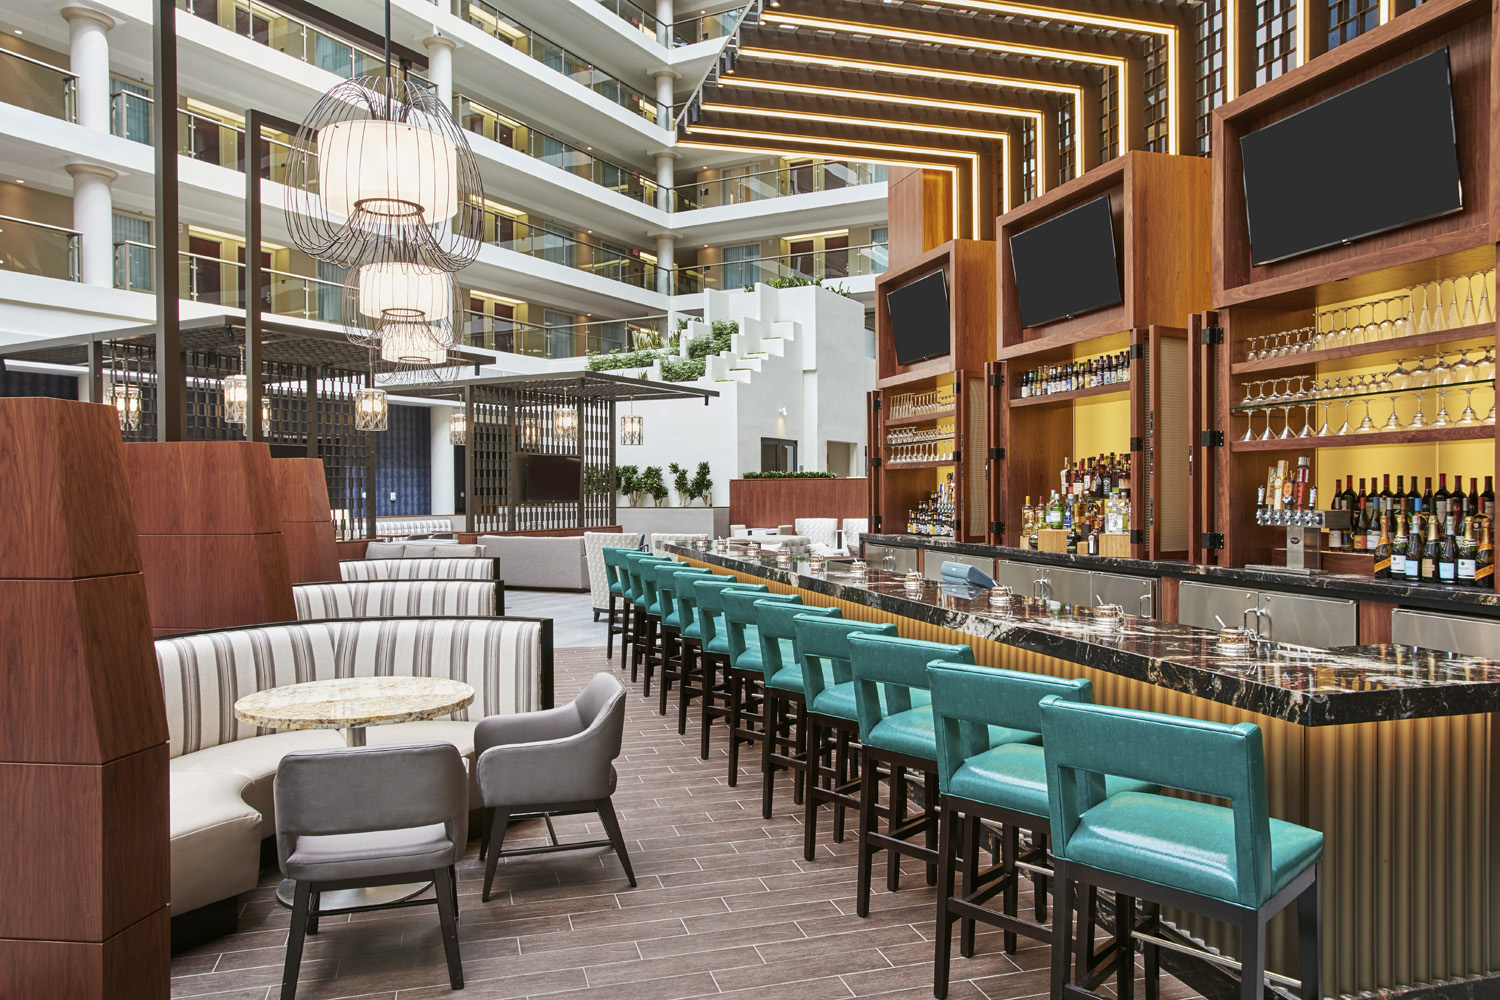 The District Tap restaurant at the Embassy Suites by Hilton Washington DC Georgetown is the ideal spot for a night cap after a day of exploring the area's bustling food scene.